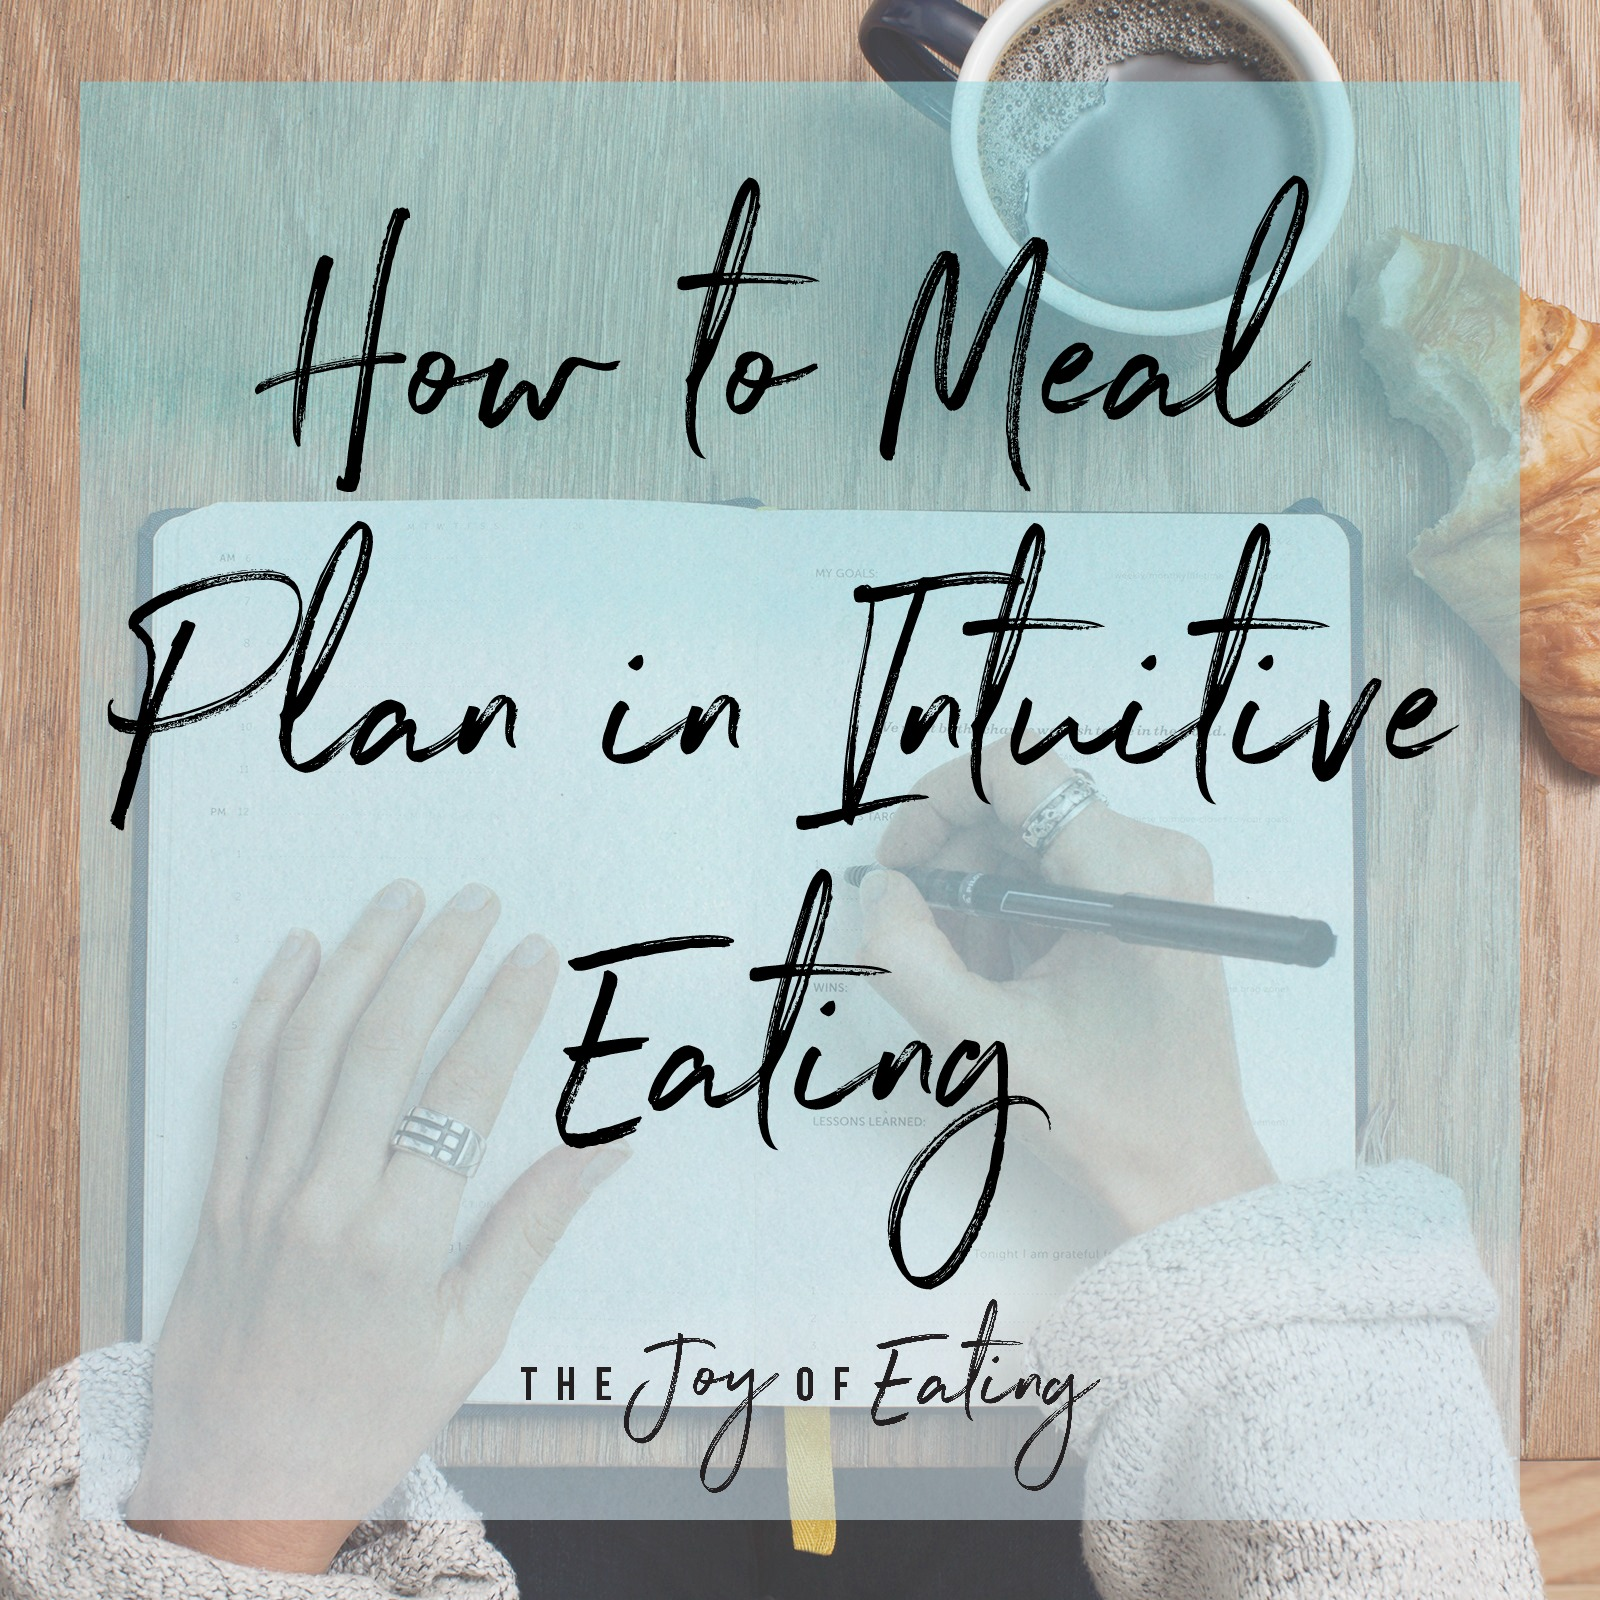 Learn how to meal plan for intuitive eating! #intuitiveeating #mealplanning #mealprep #healthyeating